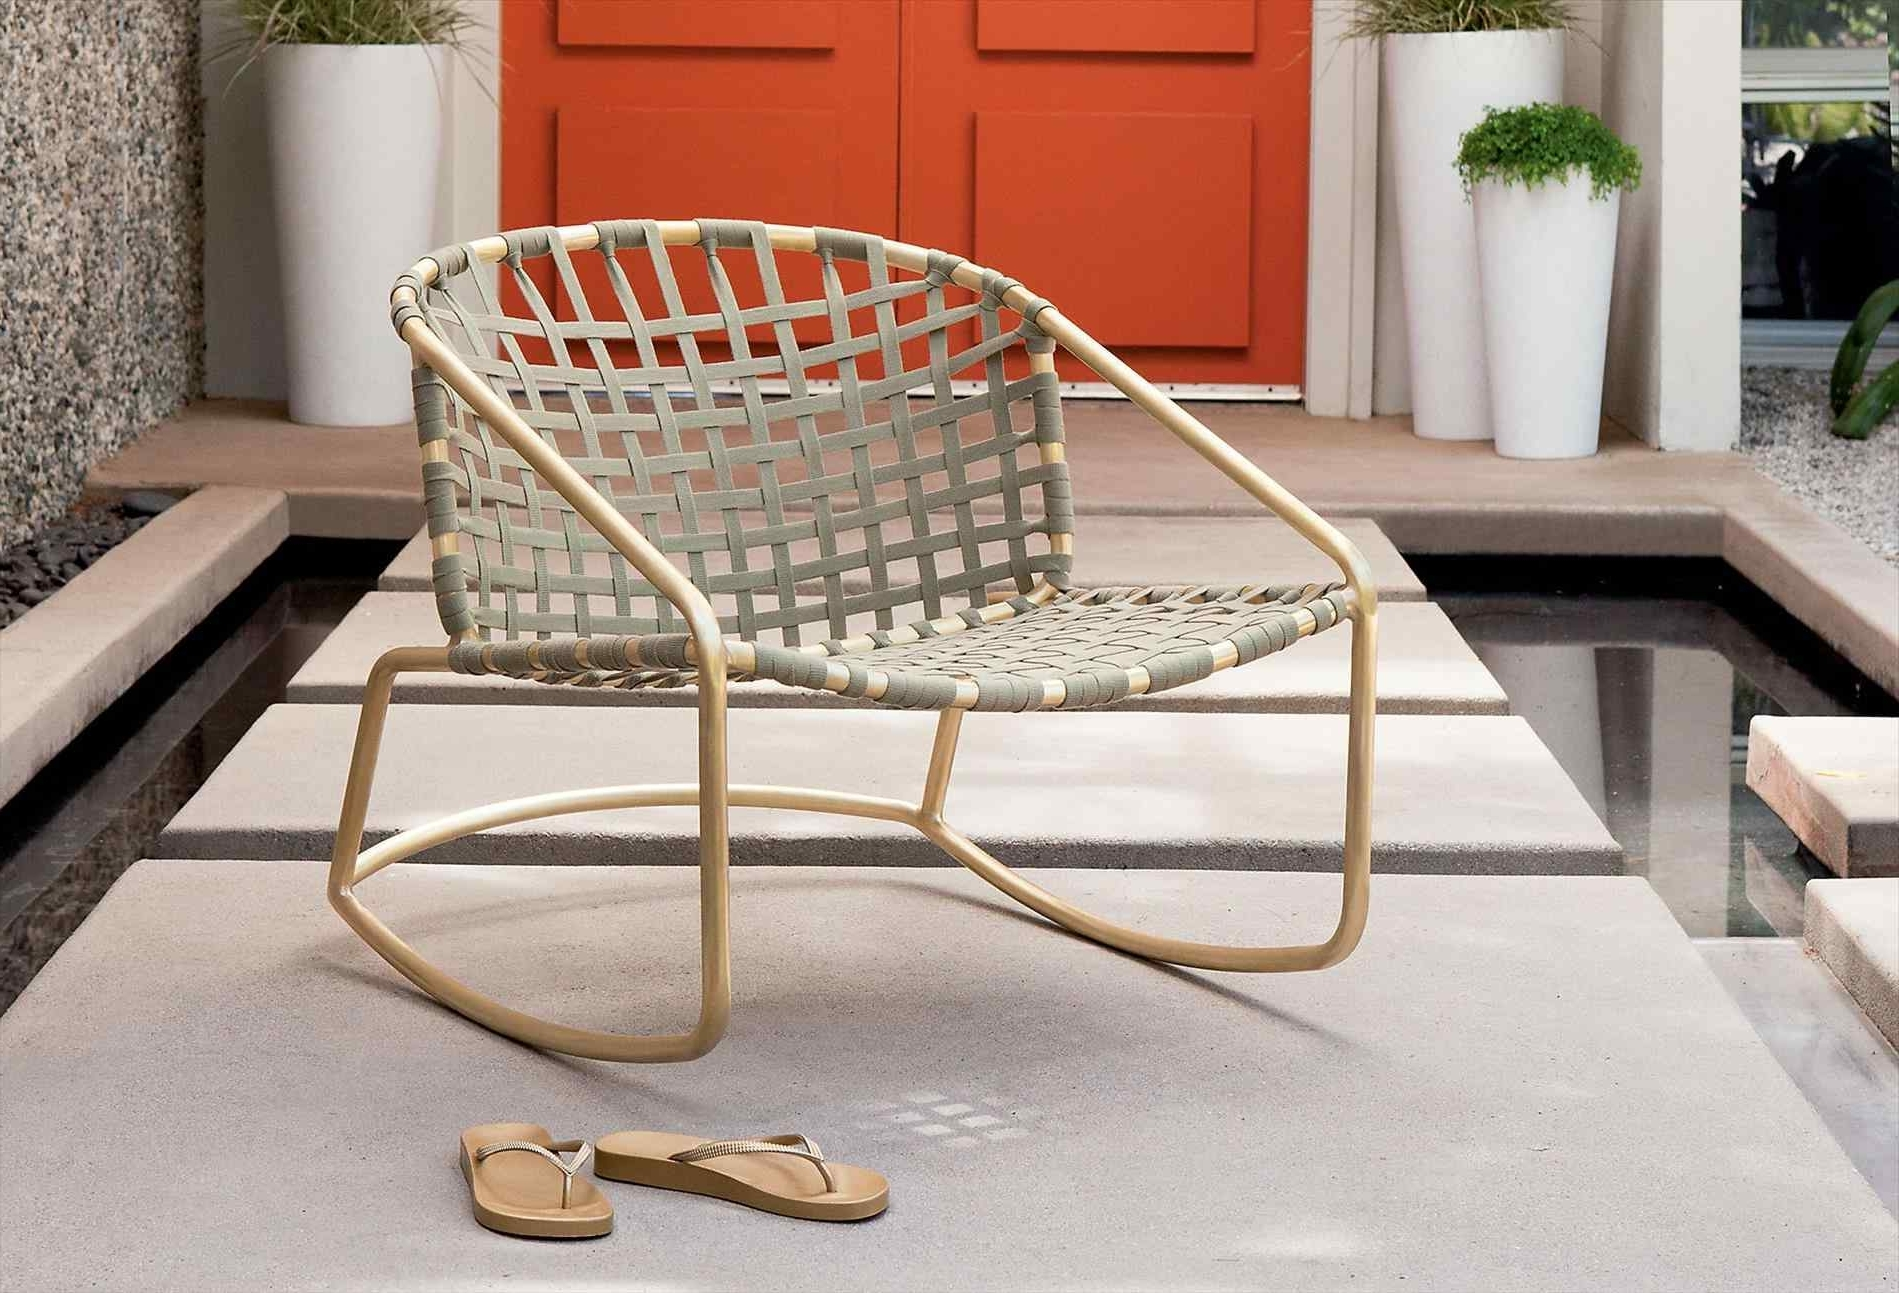 Lounge Chair : Chaise Lounge Chair Patio Furniture Chaise Lounge For Most Up To Date Brown Jordan Chaise Lounge Chairs (View 7 of 15)